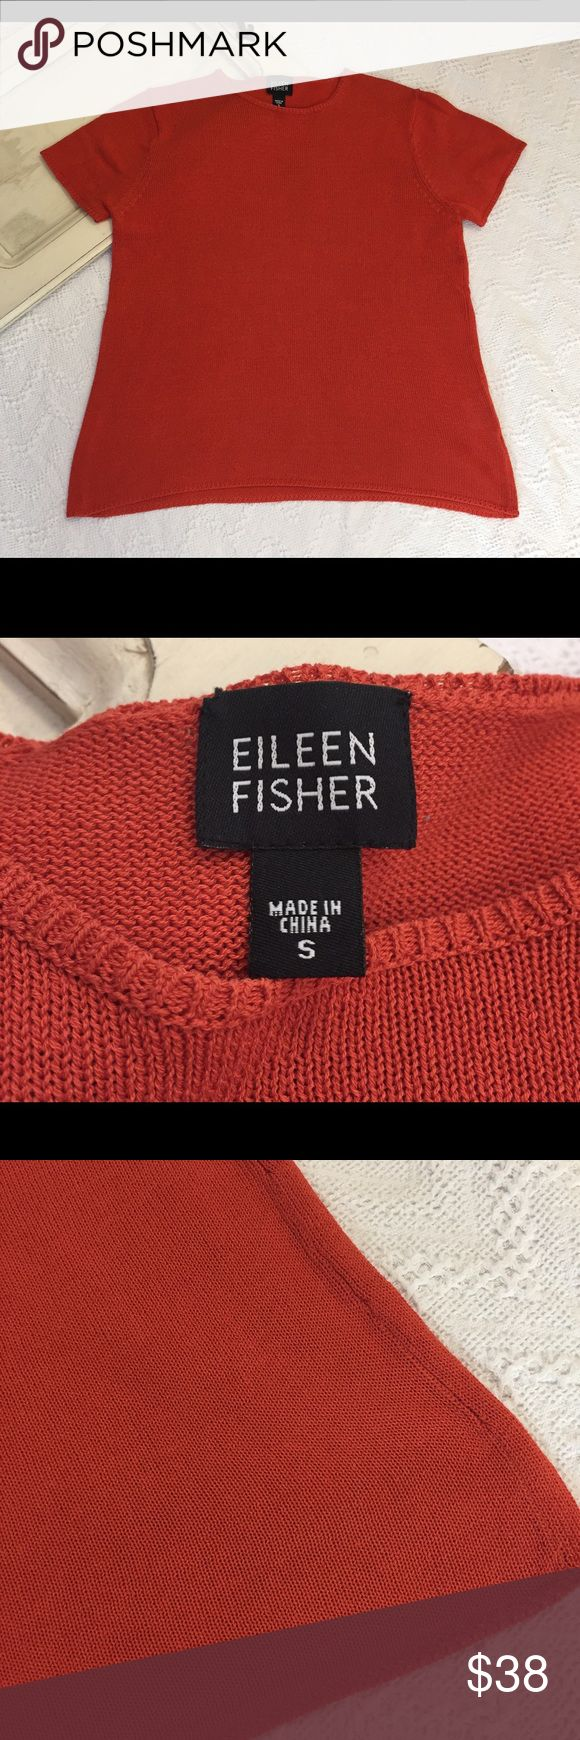 "Eileen Fisher Orange Short Sleeve Top size Small Eileen Fisher Orange Short Sleeve Top size Small.  This is a Knit, almost sweater like top, great wardrobe piece.  Gently used, no flaws.  Please see picture's.  Armpit to Armpit - 17.5""  Length - 21""   Thank you for shopping with us, we appreciate your business.  *All items are measured laying flat, please be sure to check sizing before purchasing. All brands do fit differently and all sales are final. I do my best to accurately describe all…"